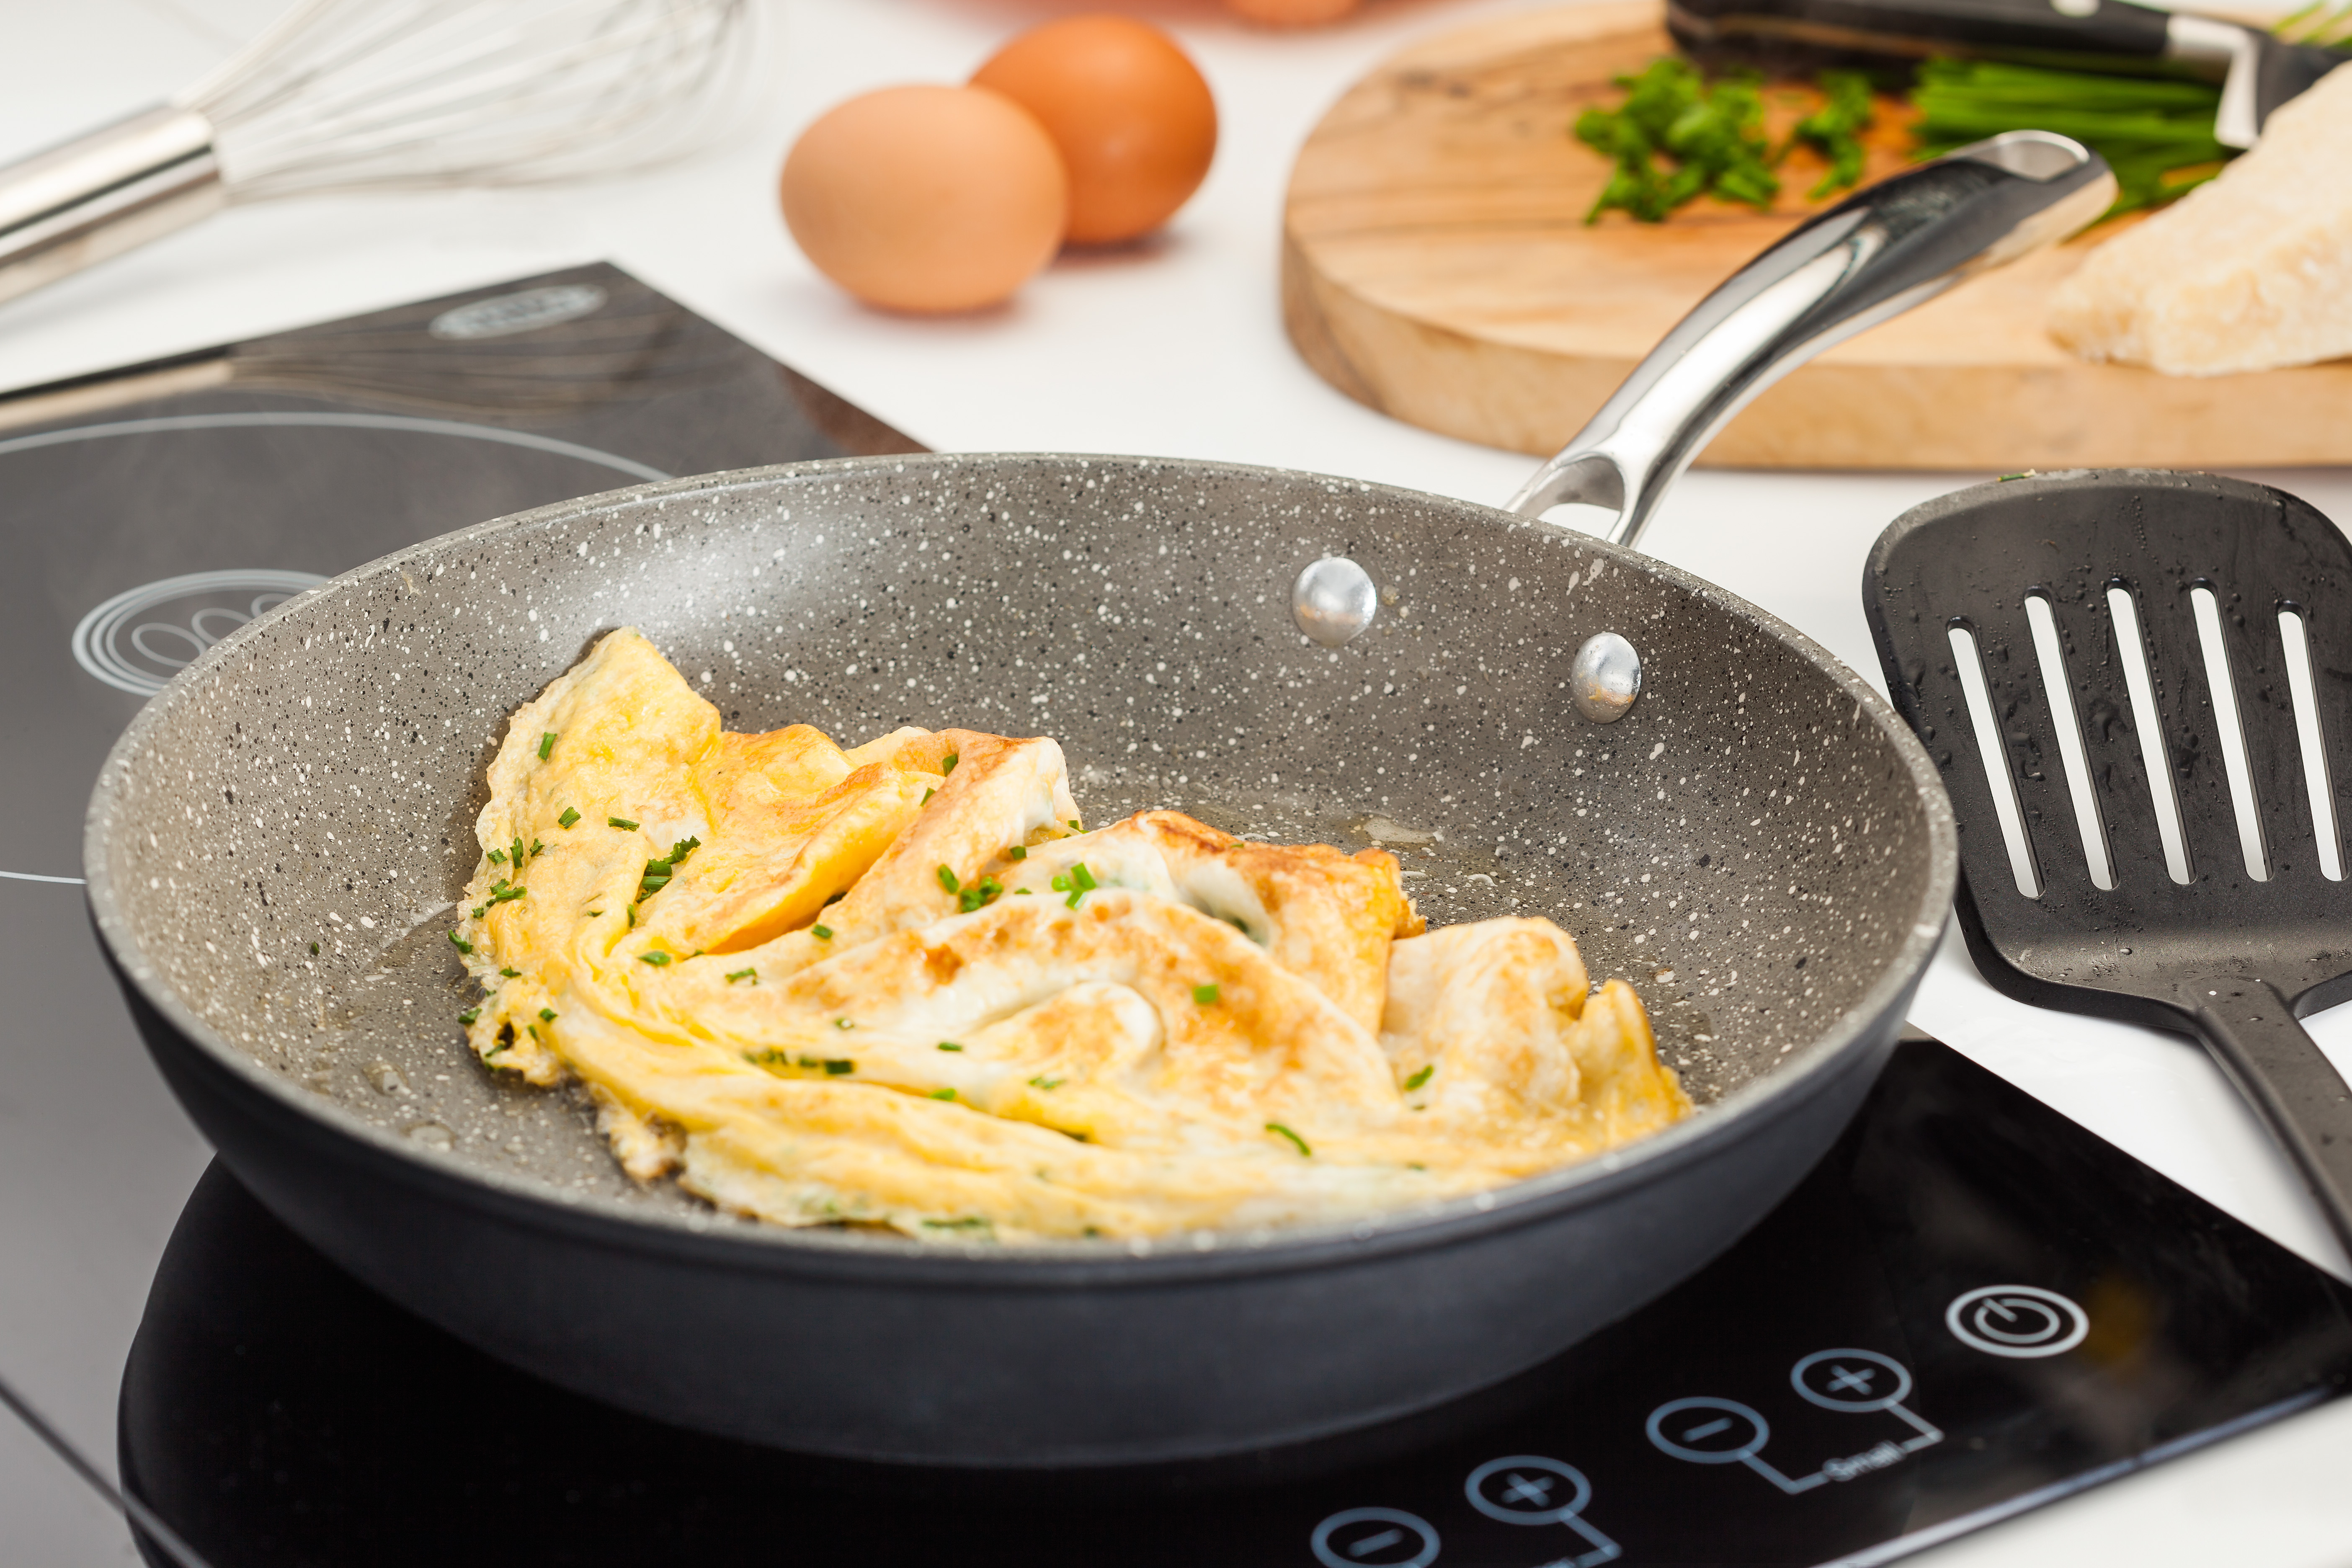 Stellar Cookware Rocktanium Frying Pan